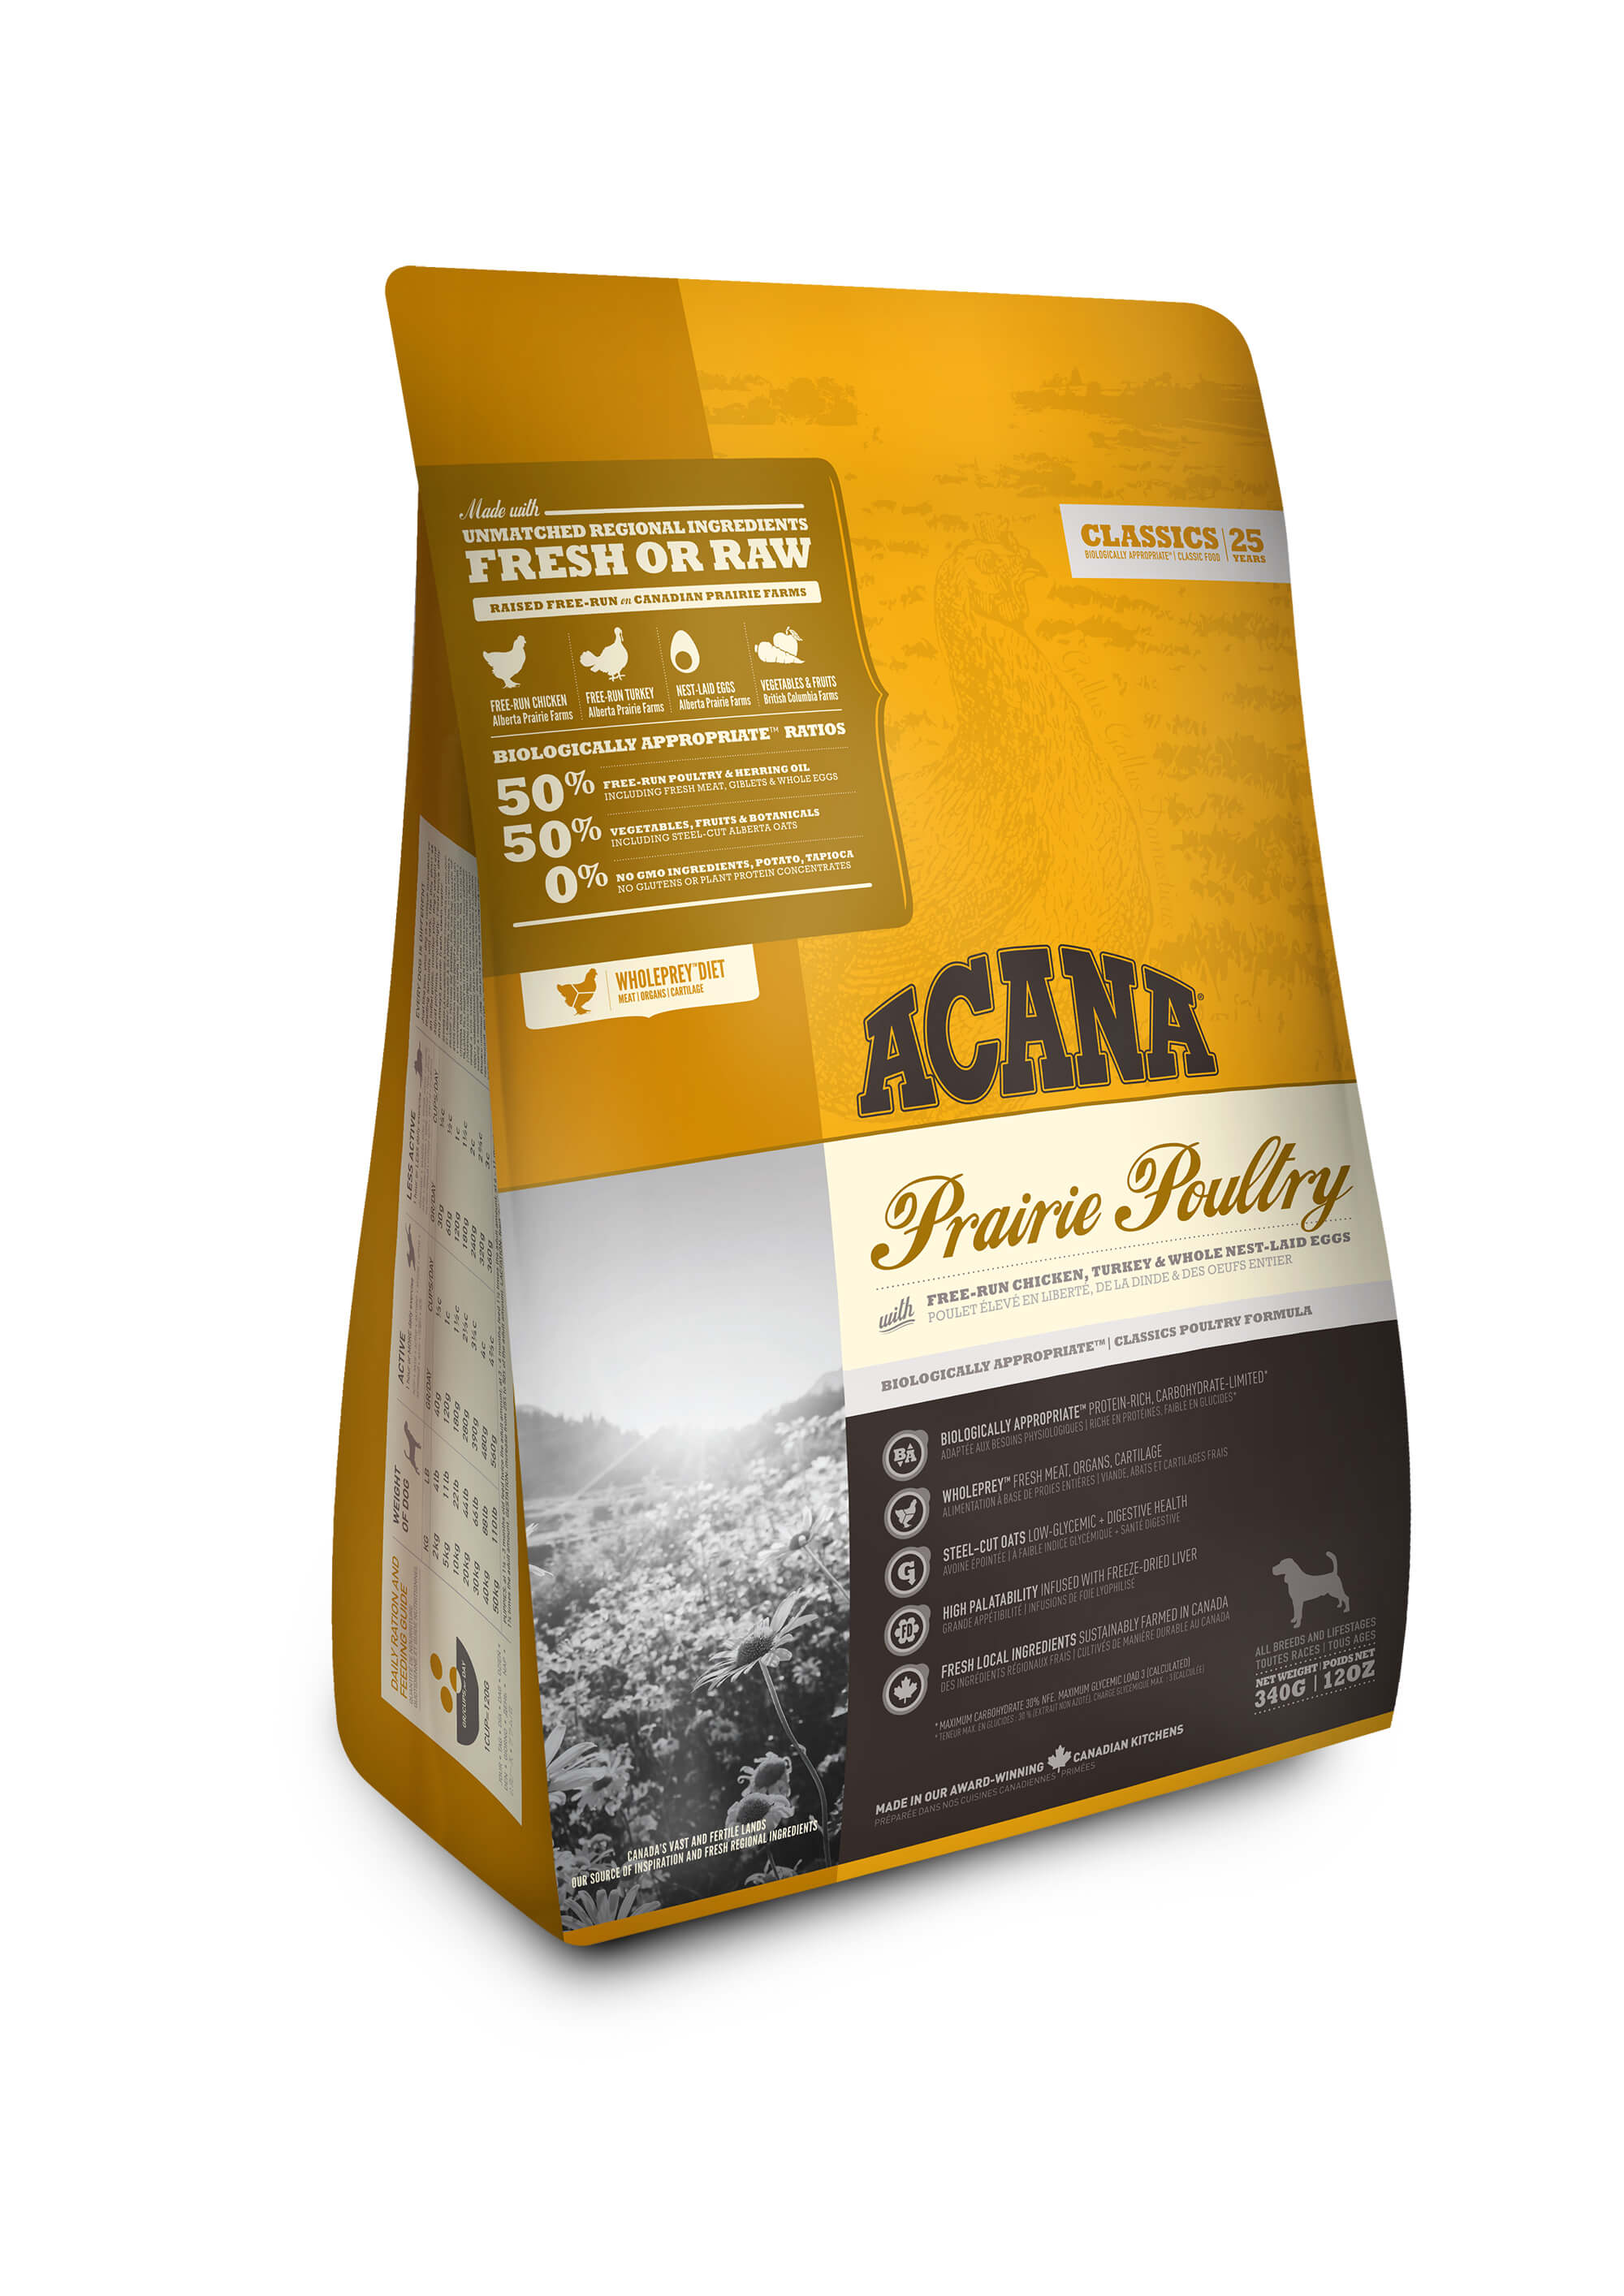 Acana Classic Prairie Poultry Dog Food The Pet Project